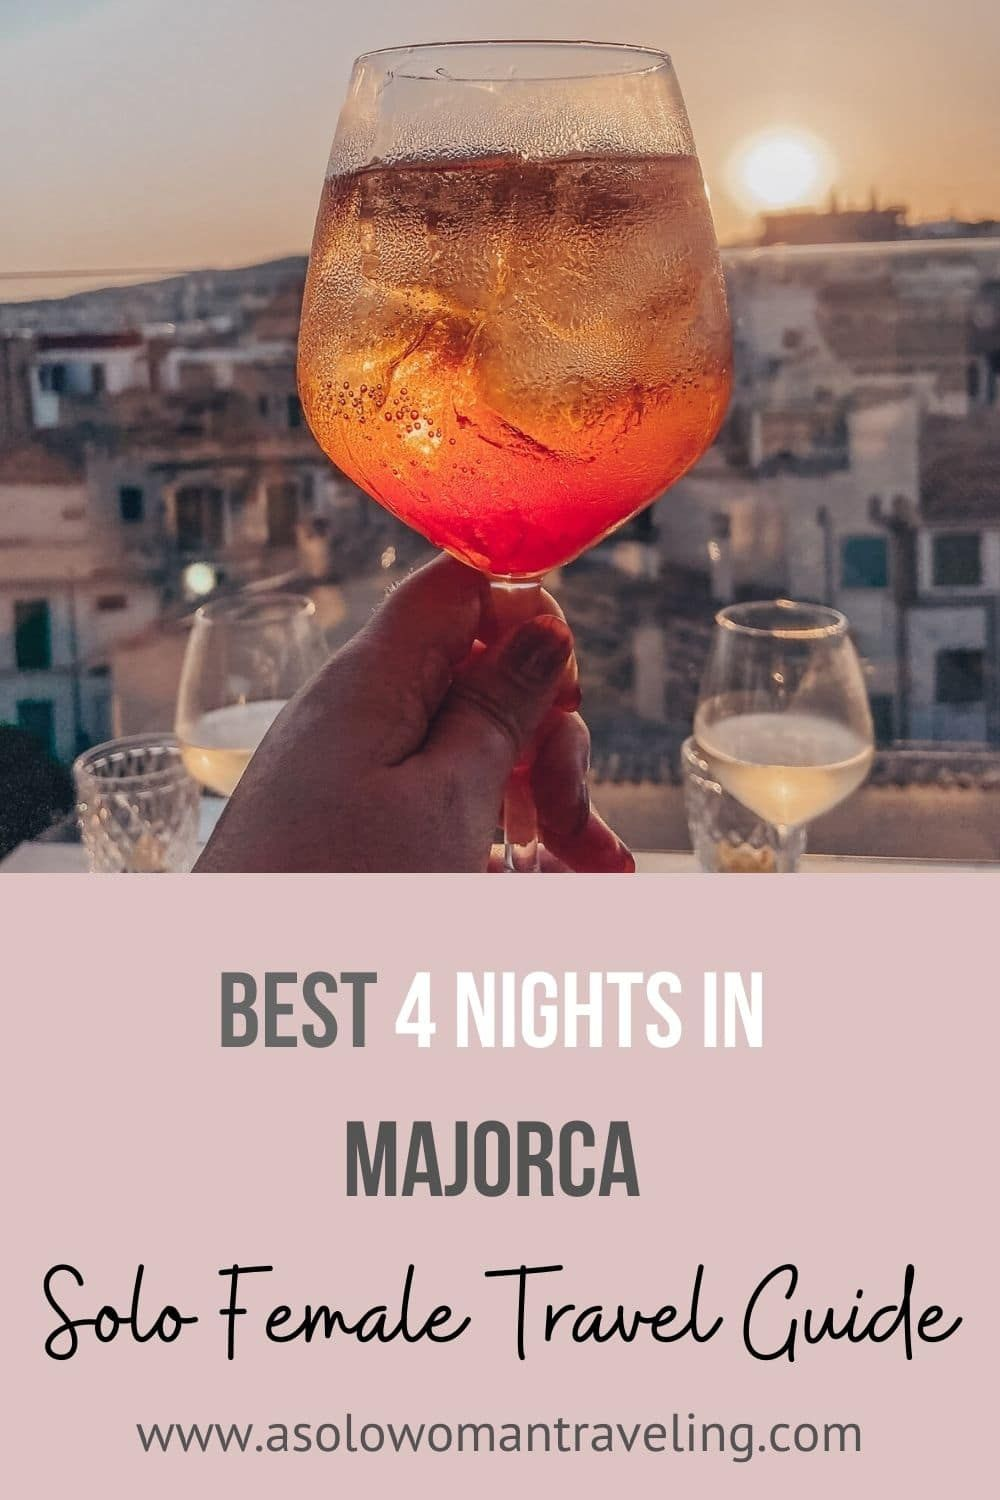 Best 4 Nights In Majorca Full Itinerary With Free Maps To The Beaches Great For Solo Females Traveling Spa In 2020 Majorca Europe Travel Europe Travel Destinations